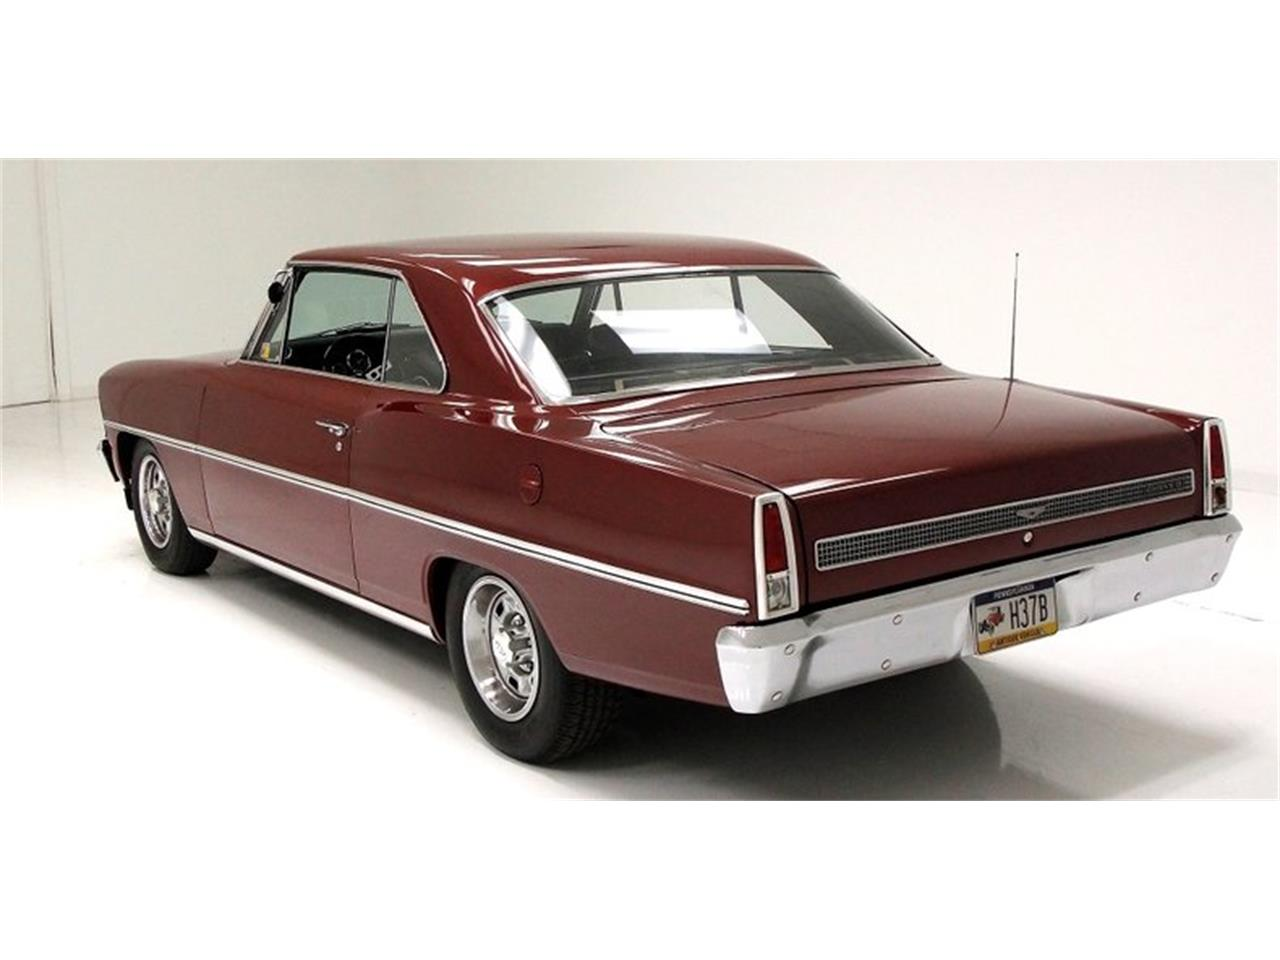 Large Picture of 1967 Chevy II located in Morgantown Pennsylvania - $45,900.00 - QN33